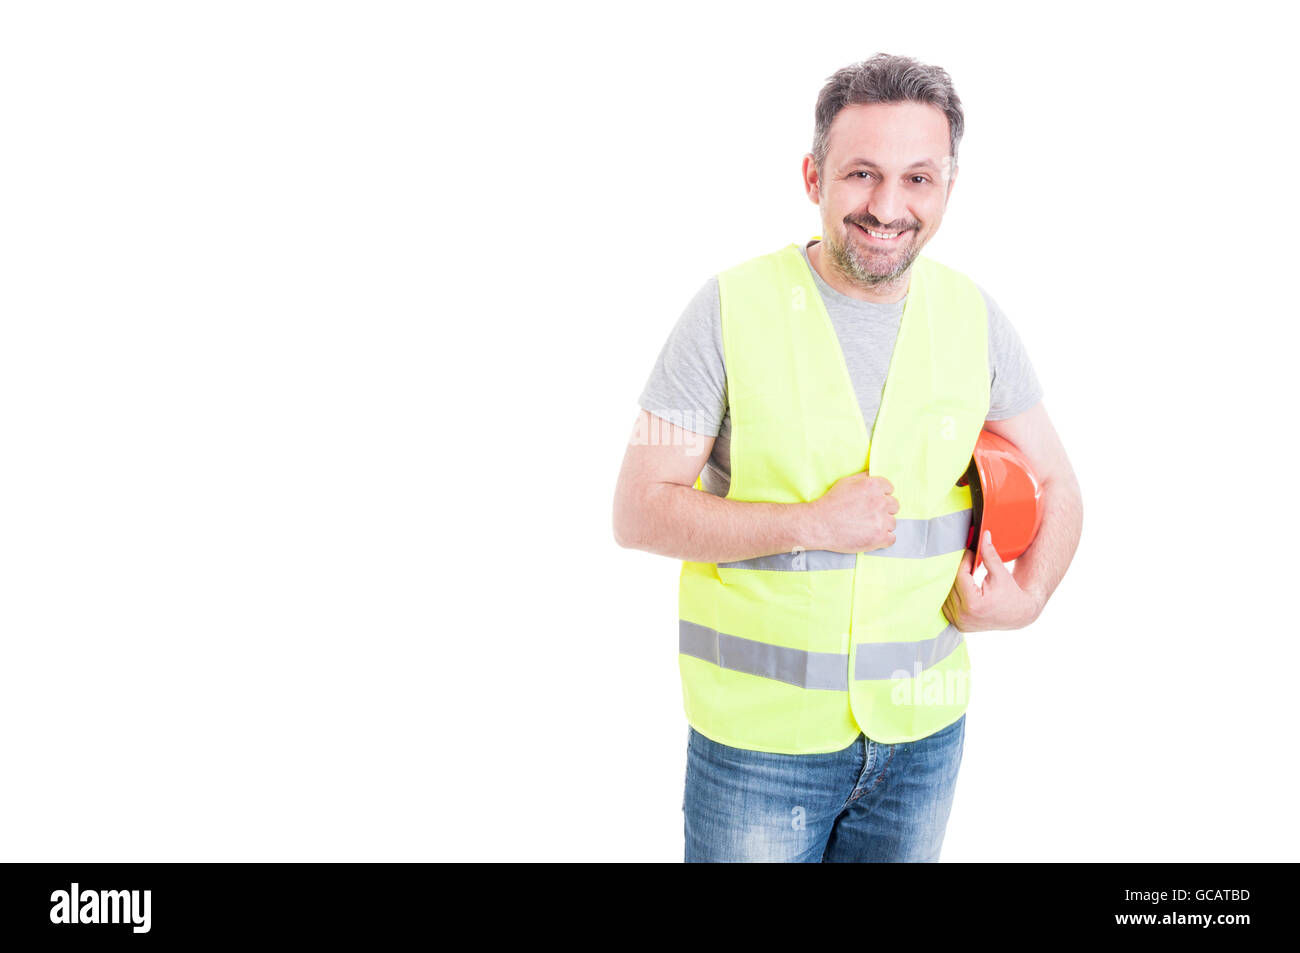 Cheerful male constructor with yellow vest holding his protection helmet isolated on white background with copy - Stock Image